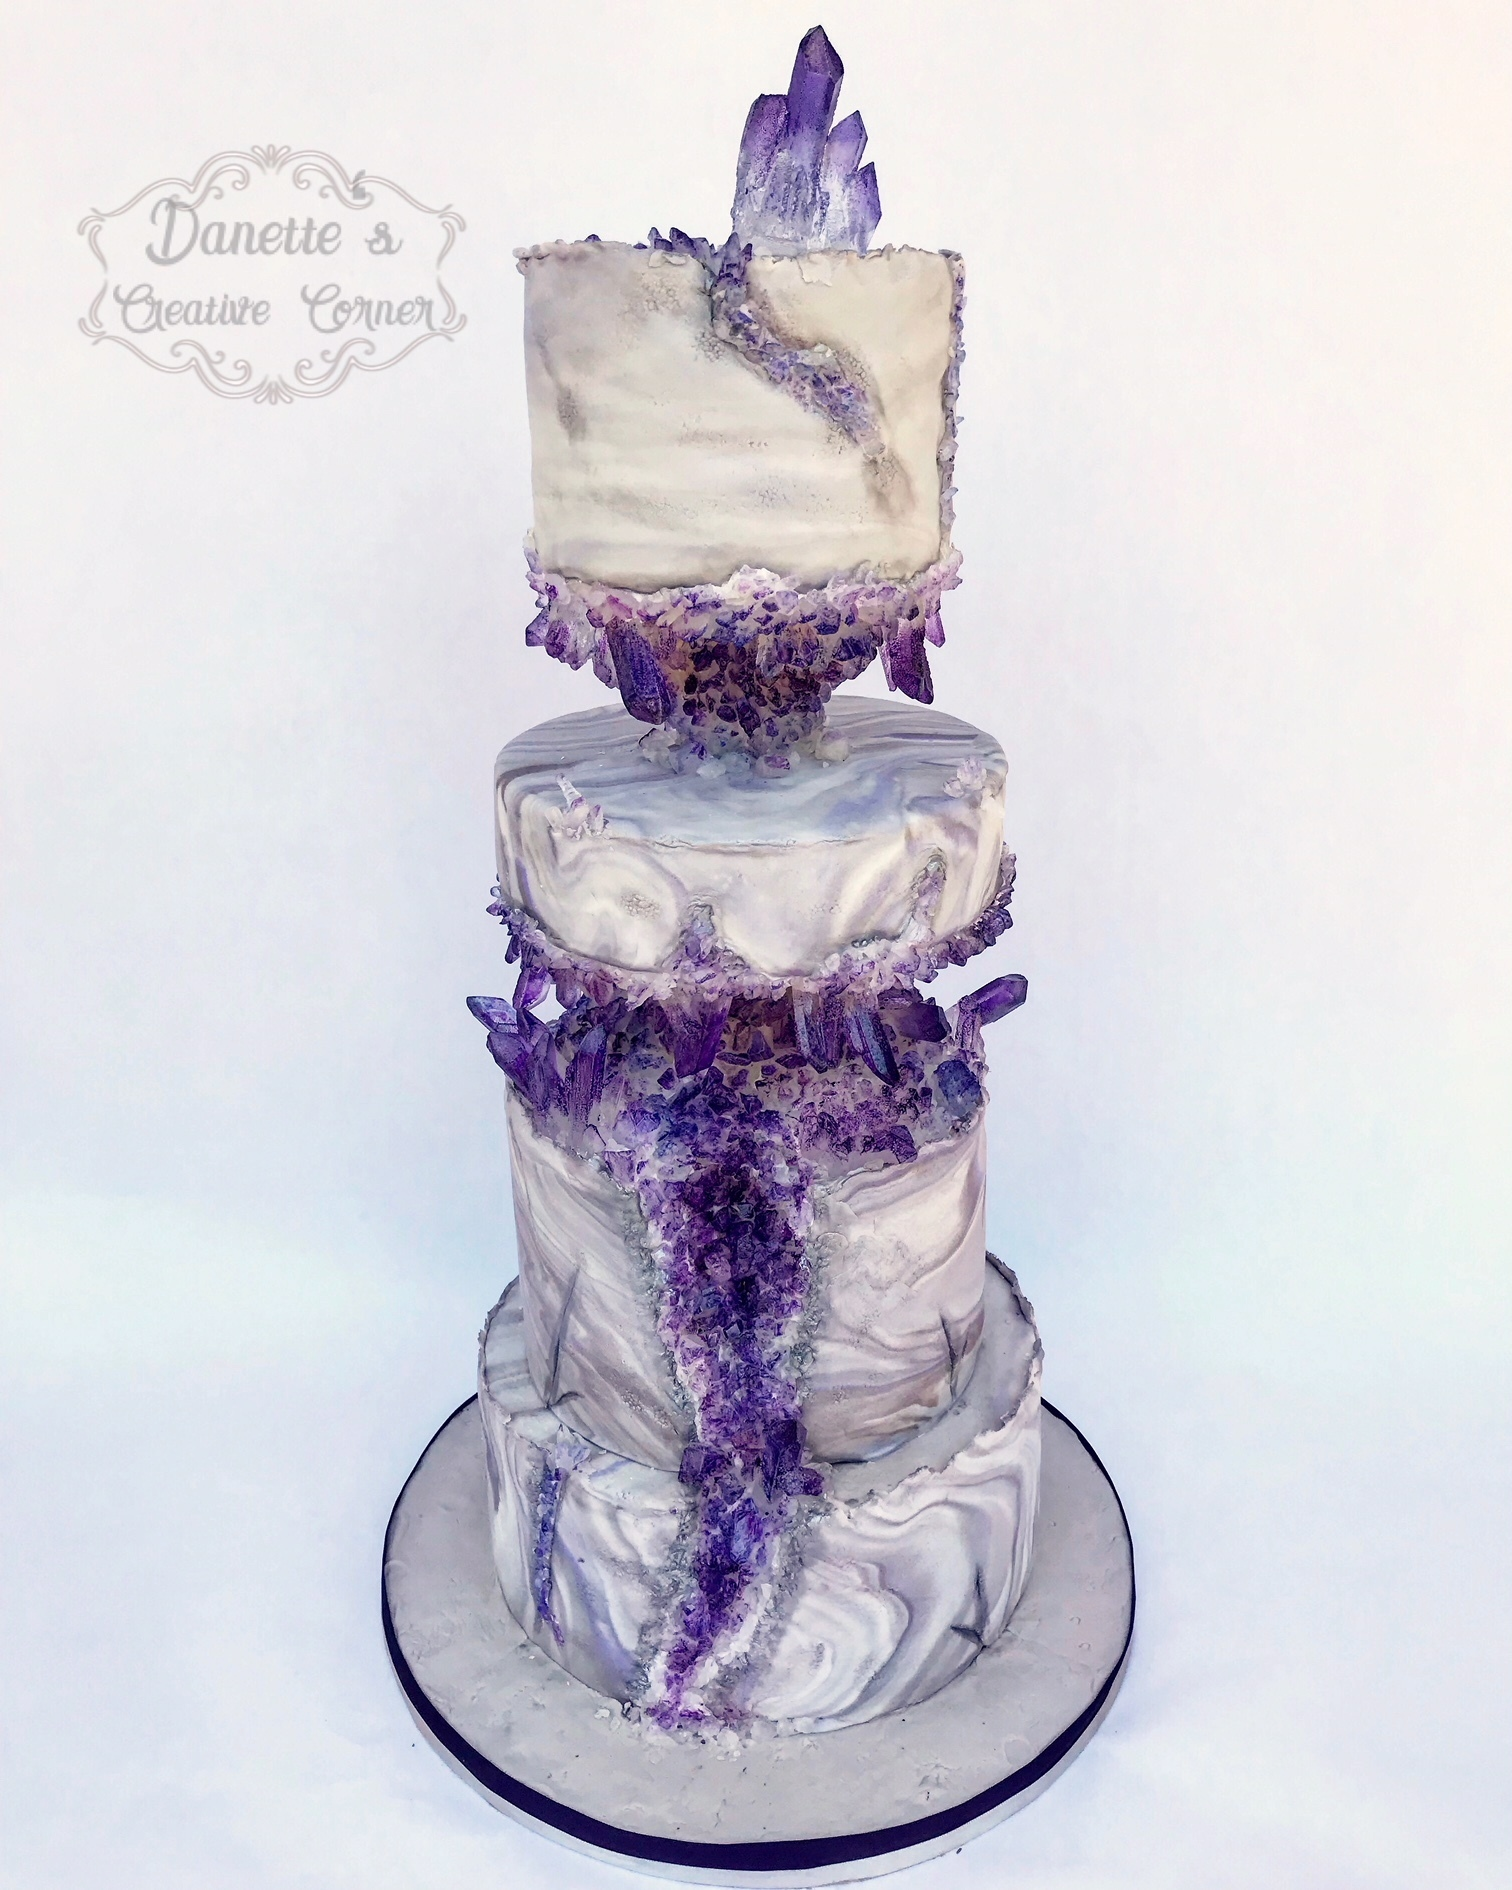 Purple fondant wedding cake with crystals